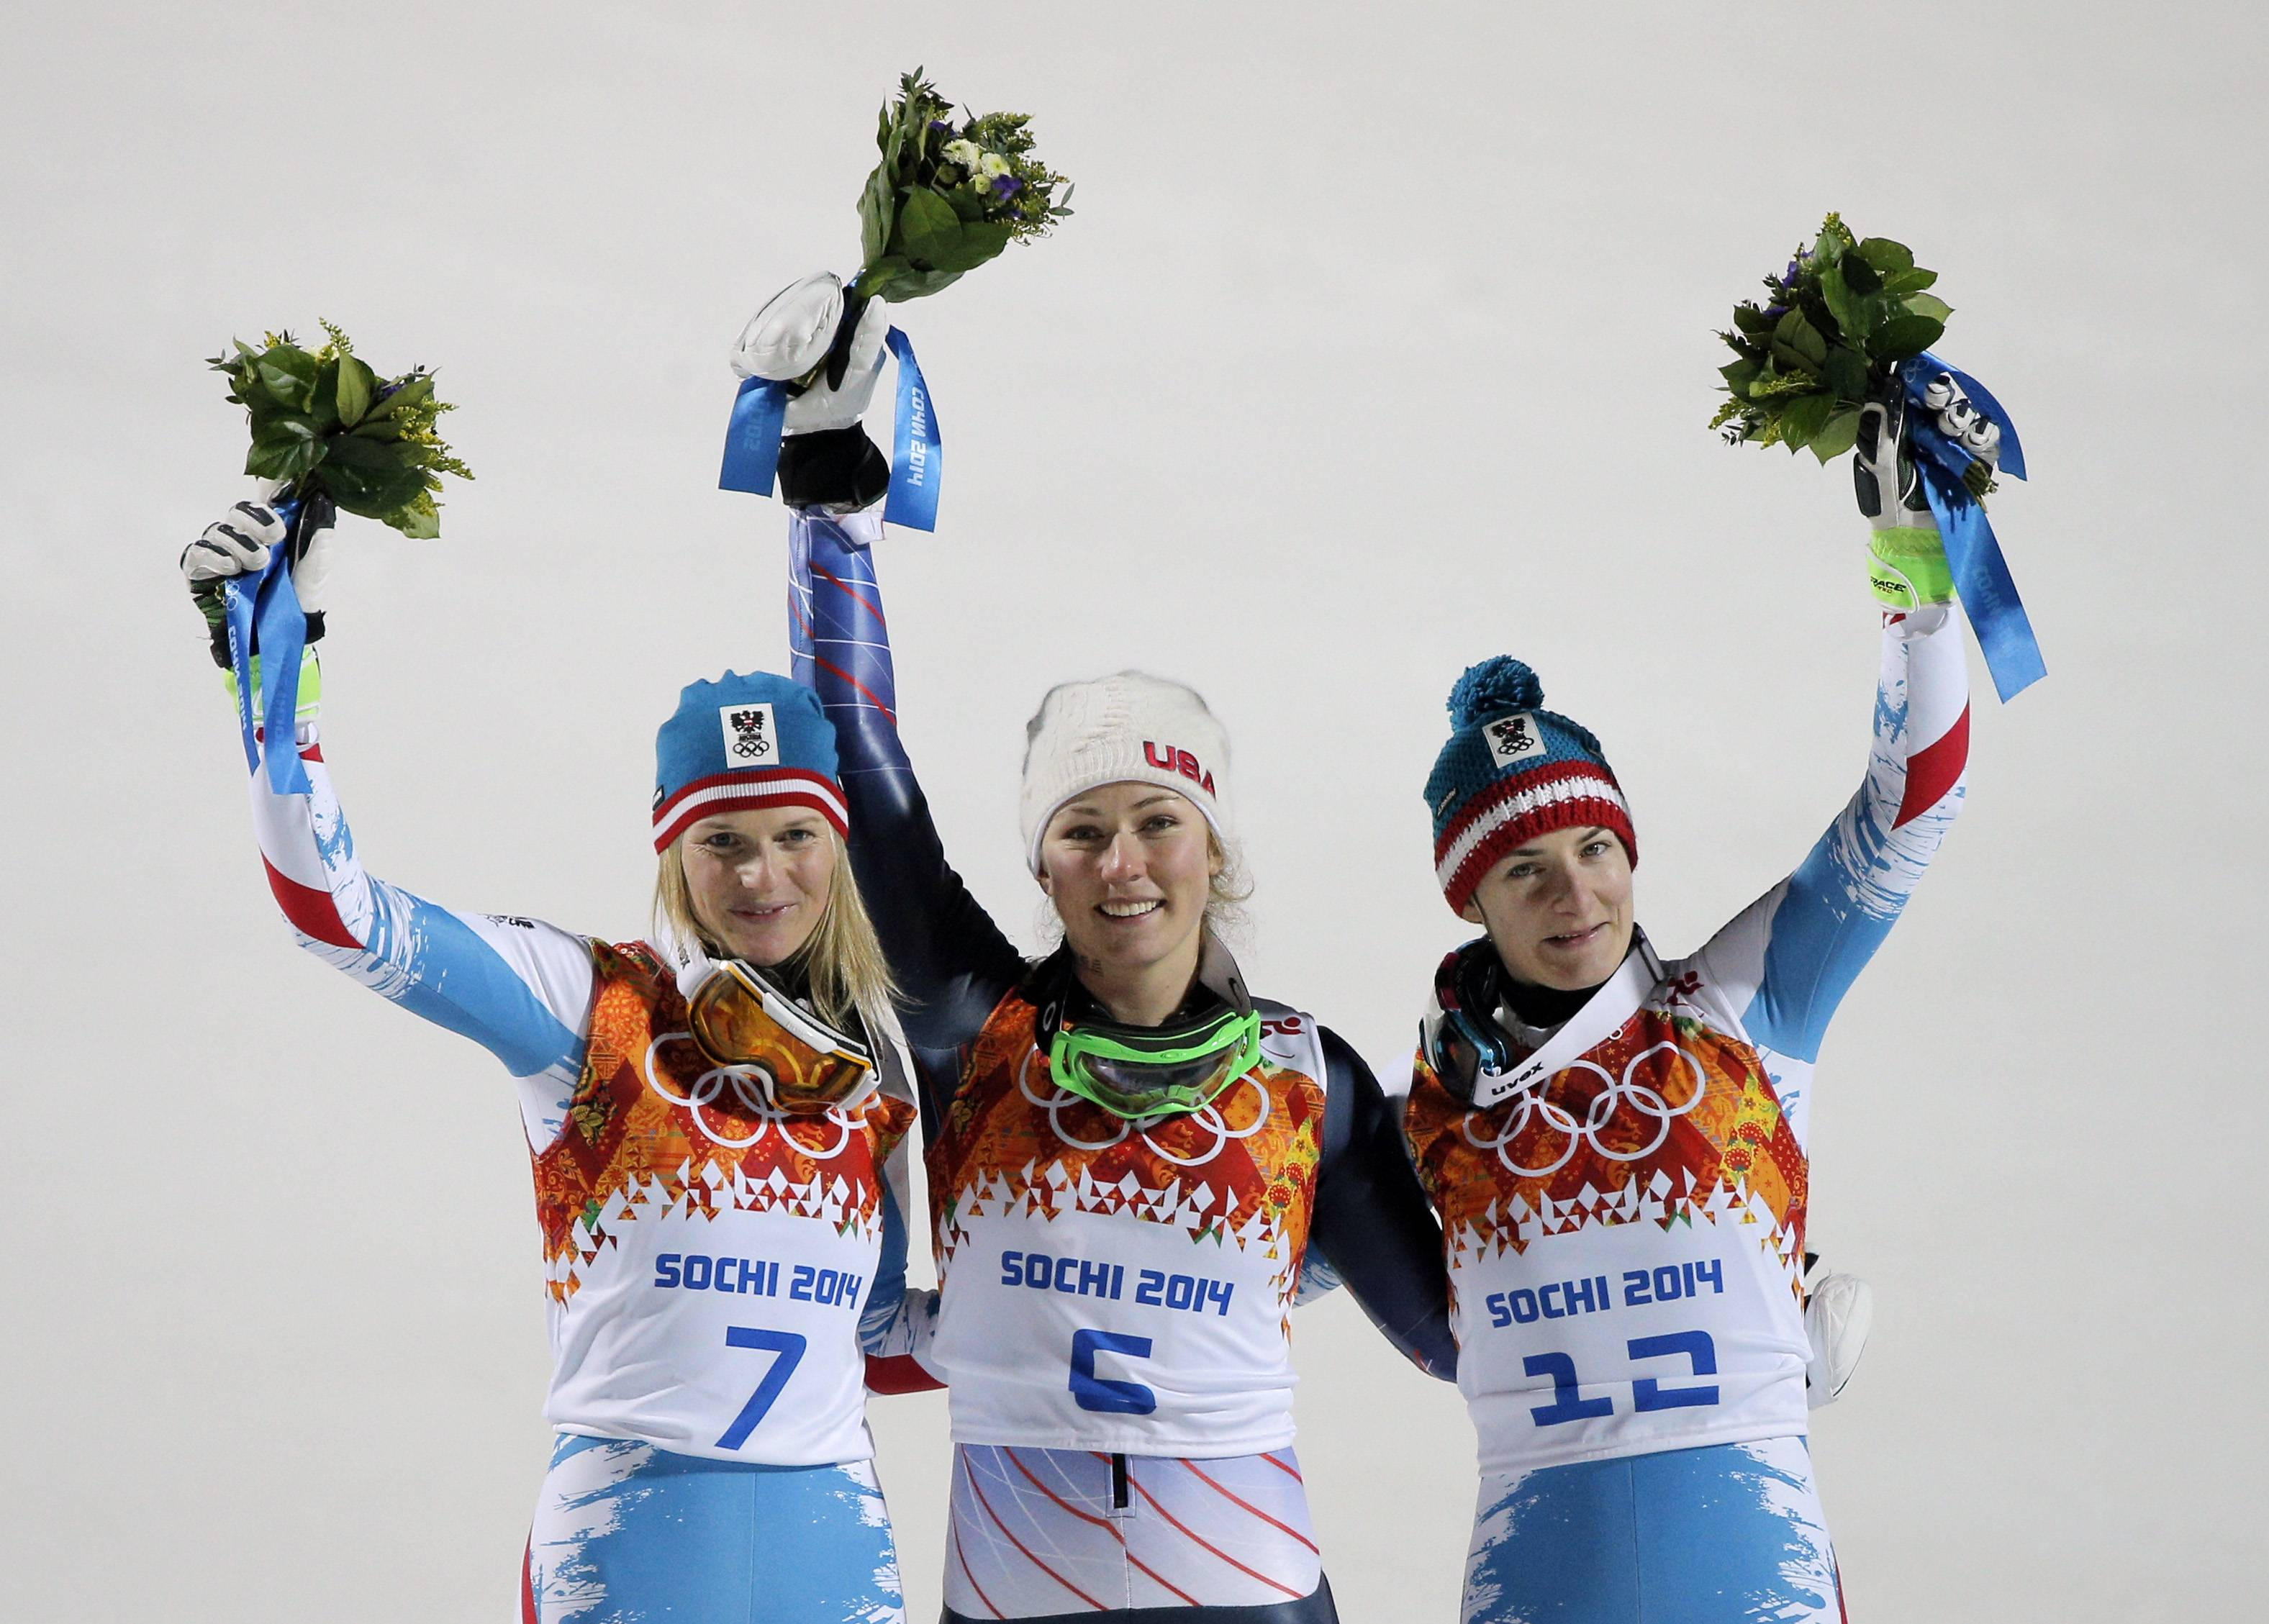 Women's slalom medalists, from left, Austria's Marlies Schild (silver), United States' Mikaela Shiffrin (gold), and Kathrin Zettel (bronze) pose for photographers.